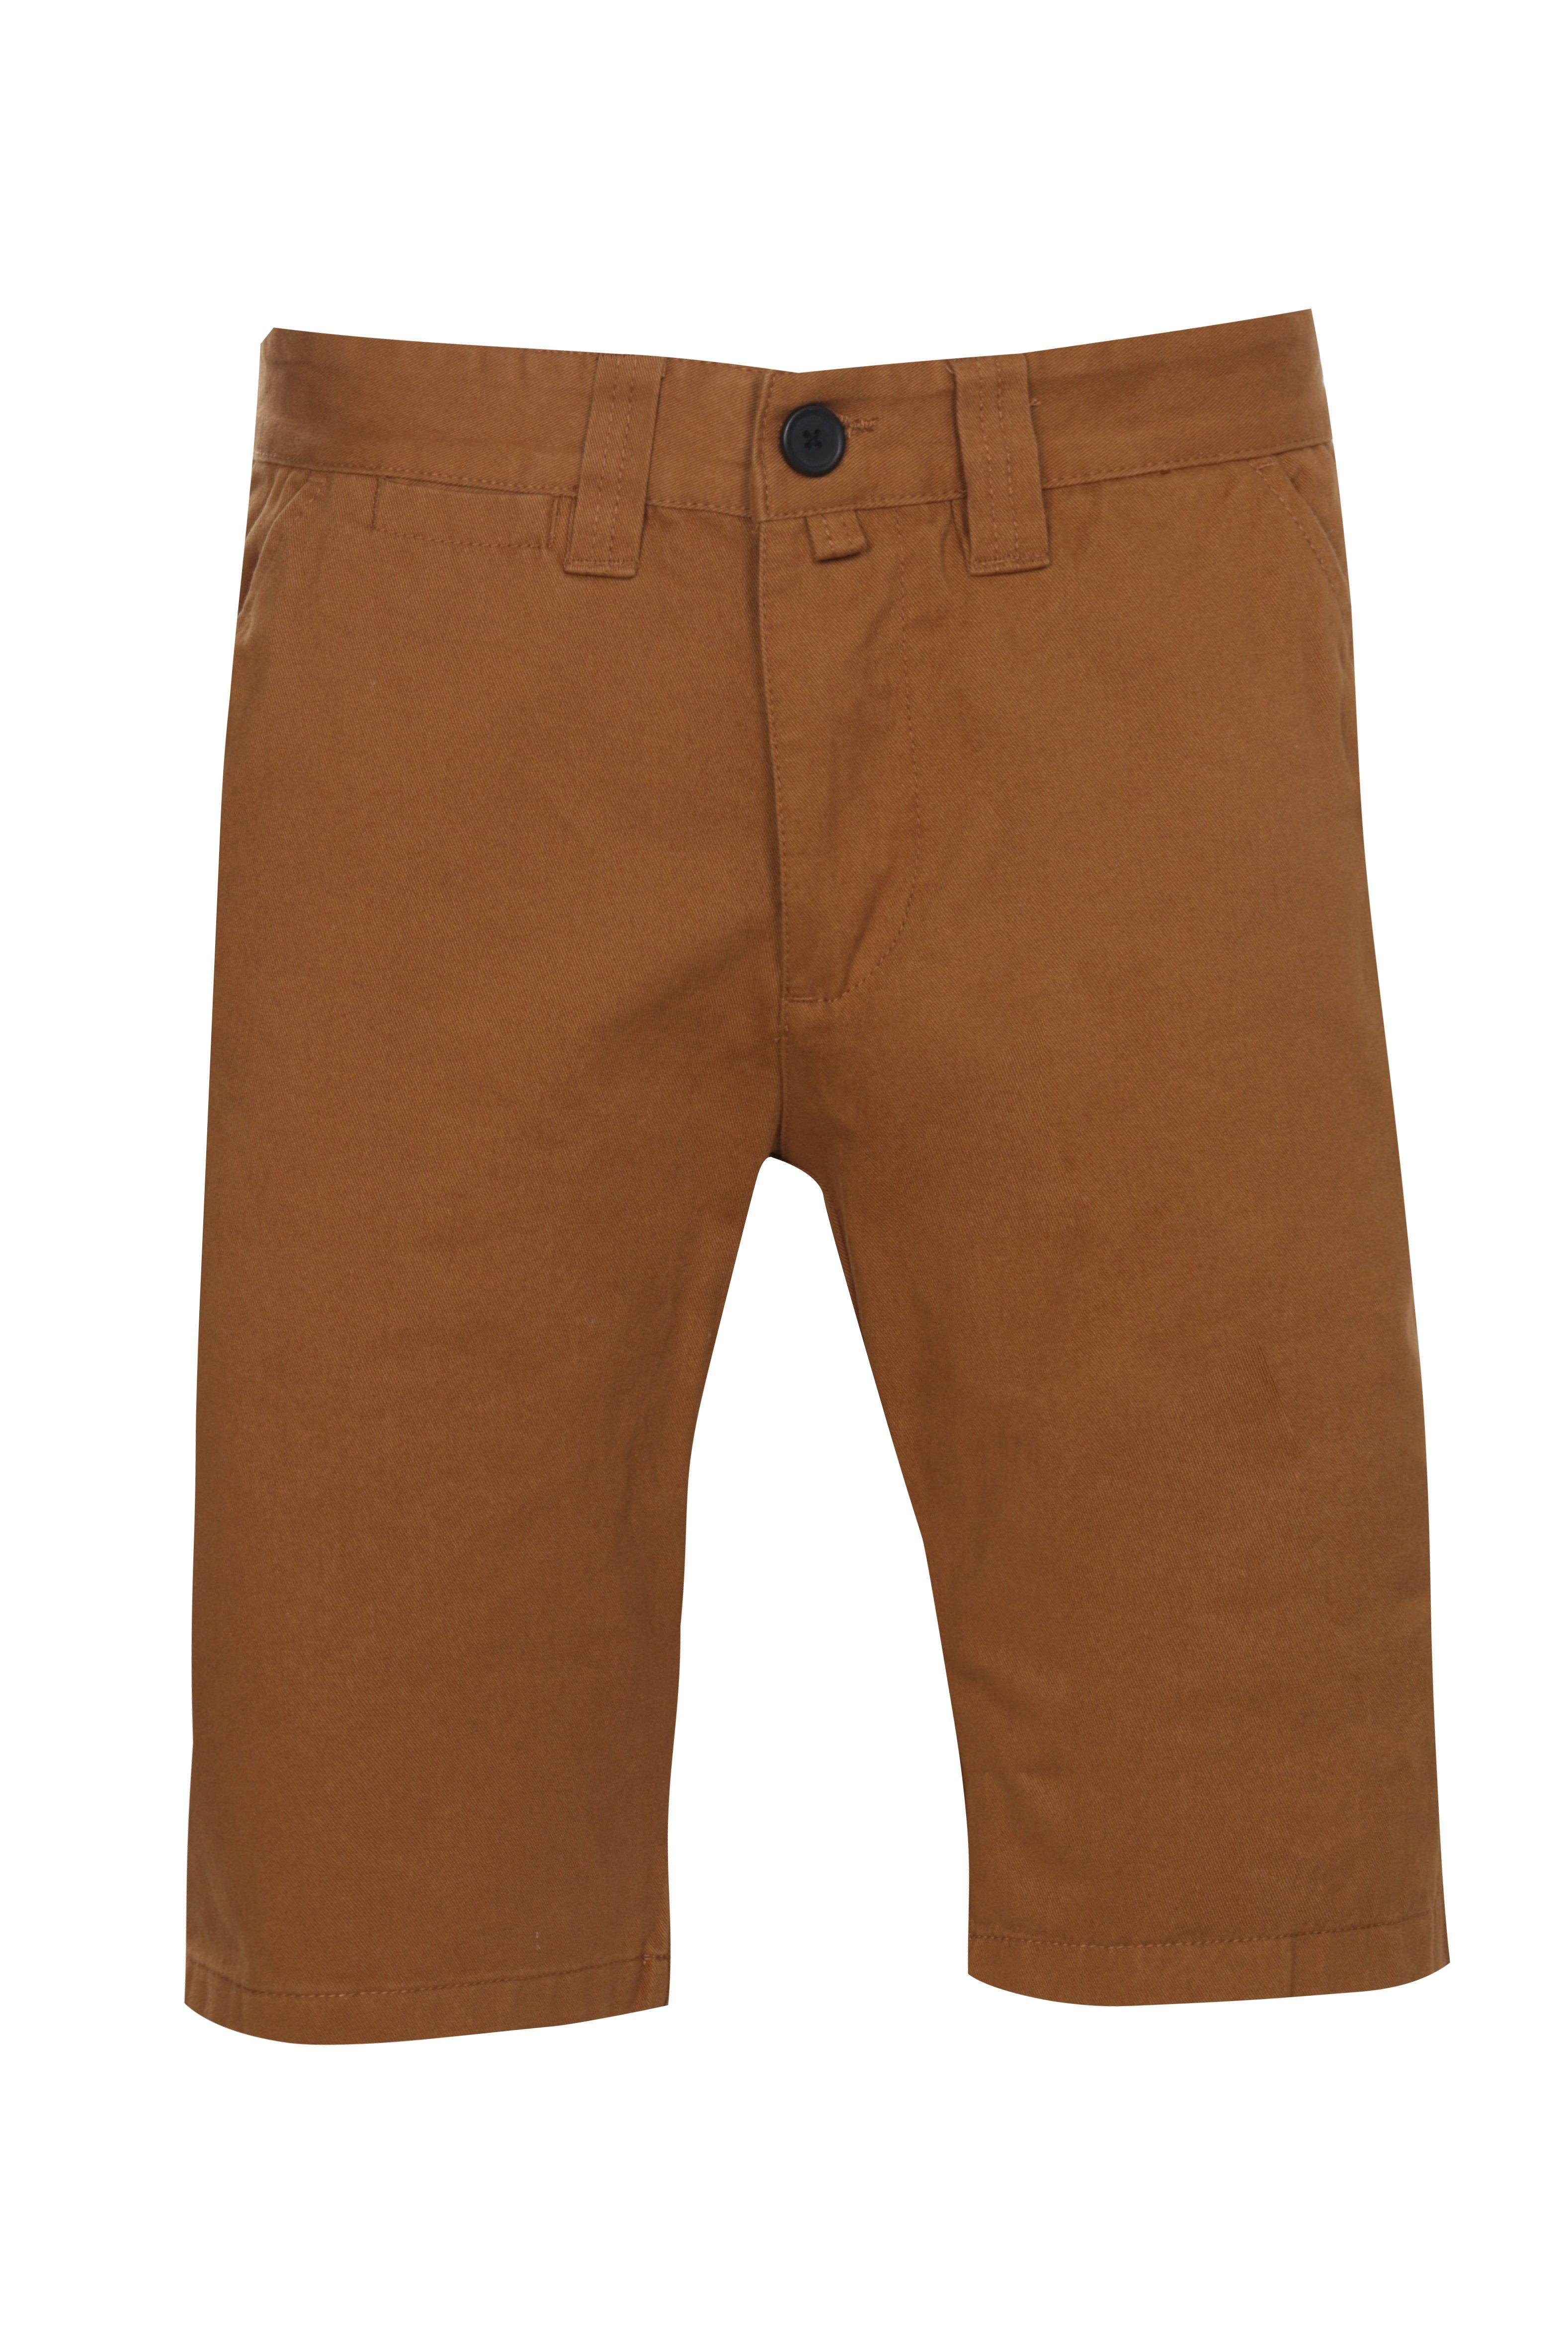 boohooMAN TOBACCO Tabacco Slim Fit Chino Short